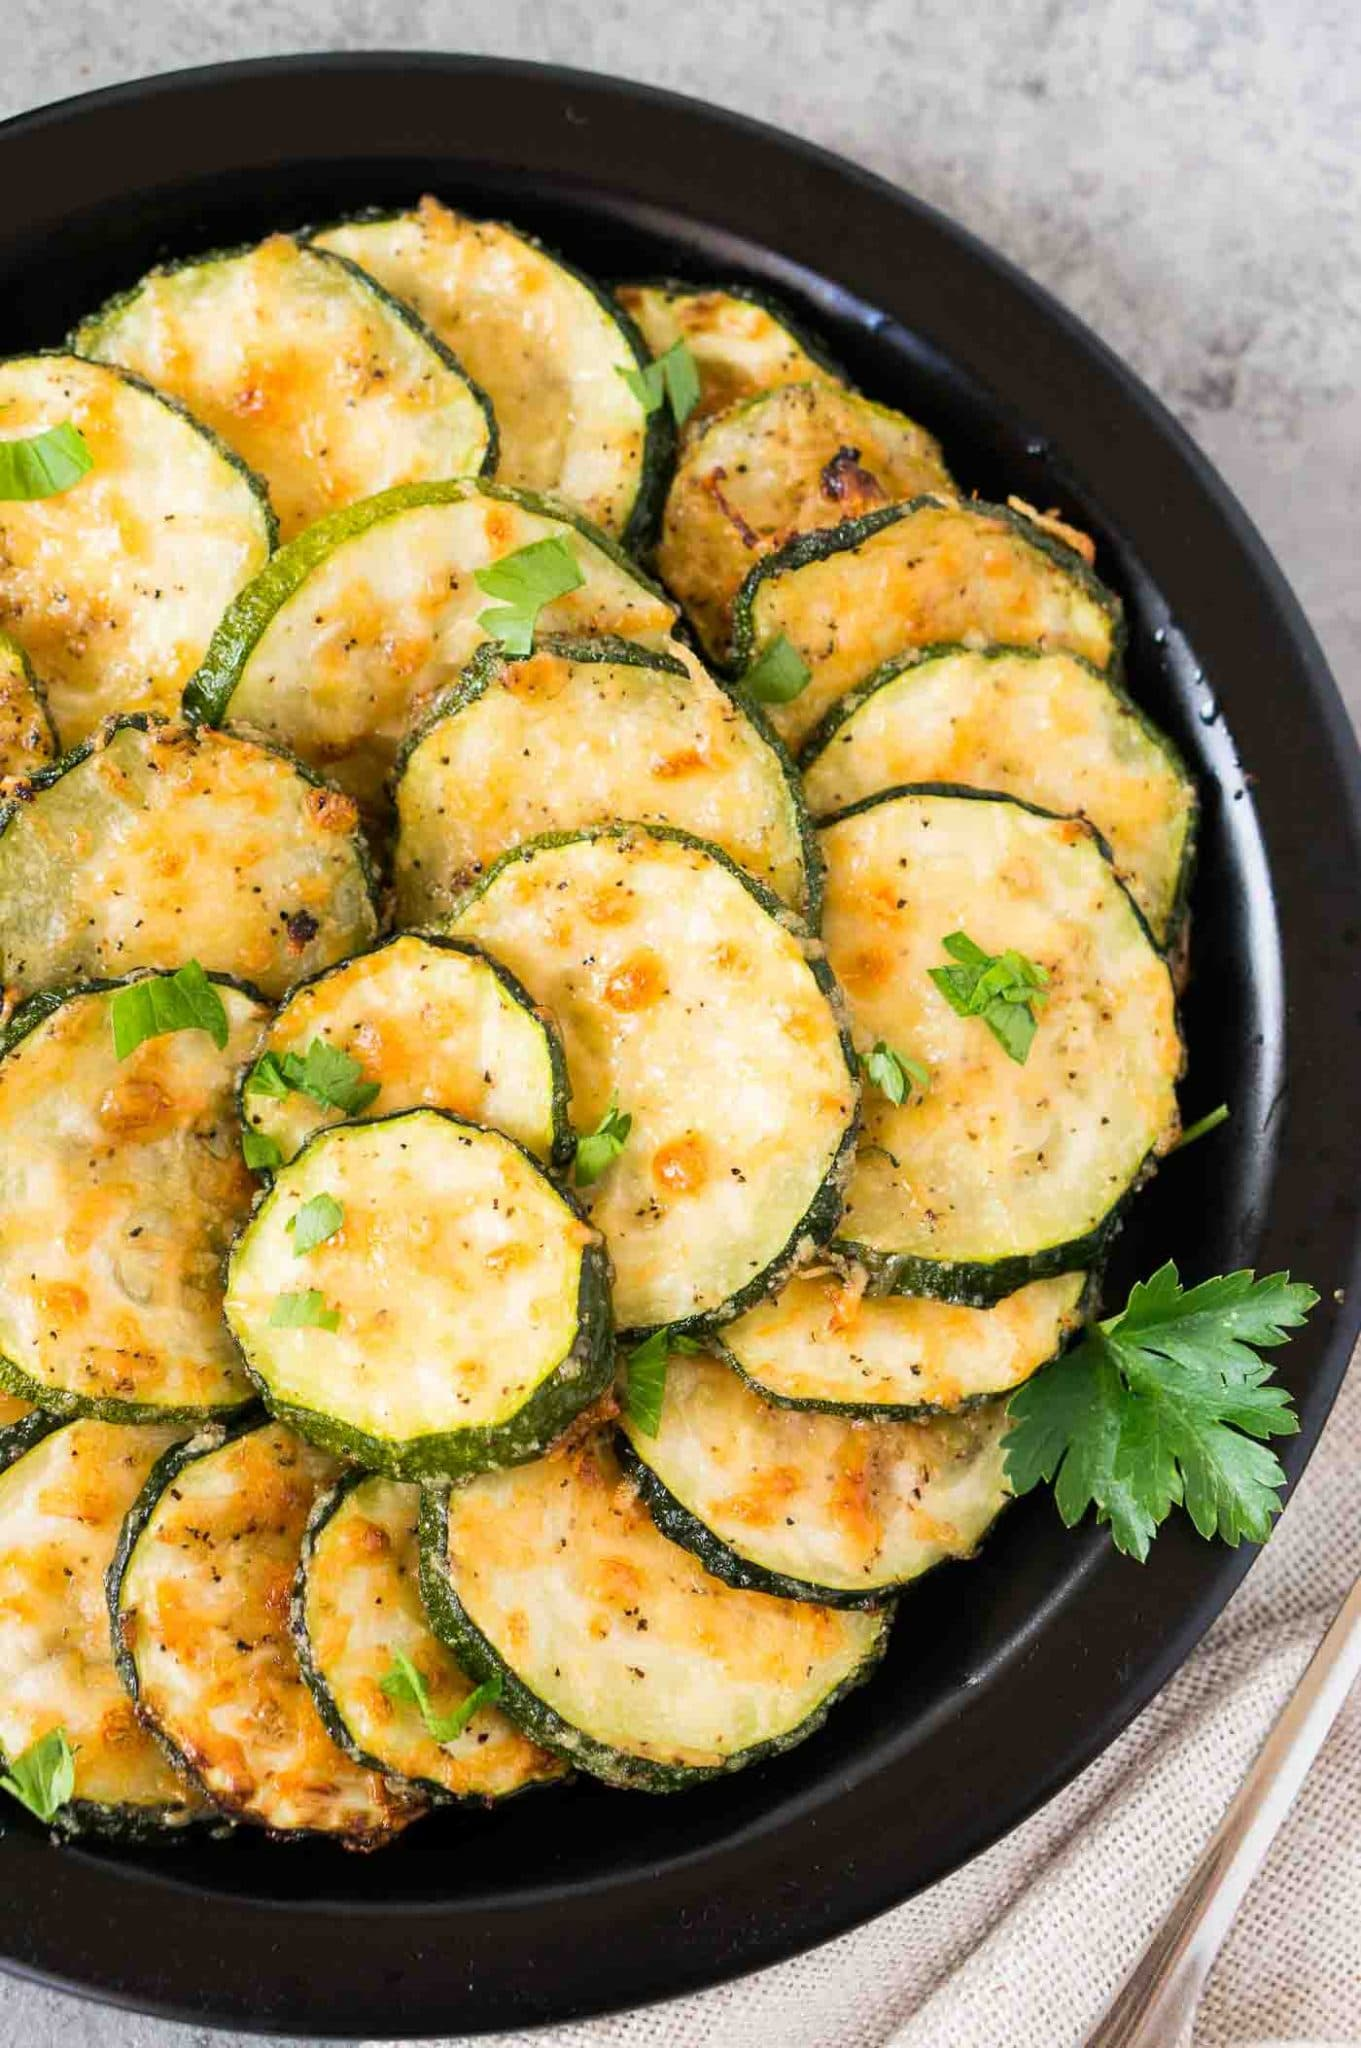 close up image of zucchini slices on a plate